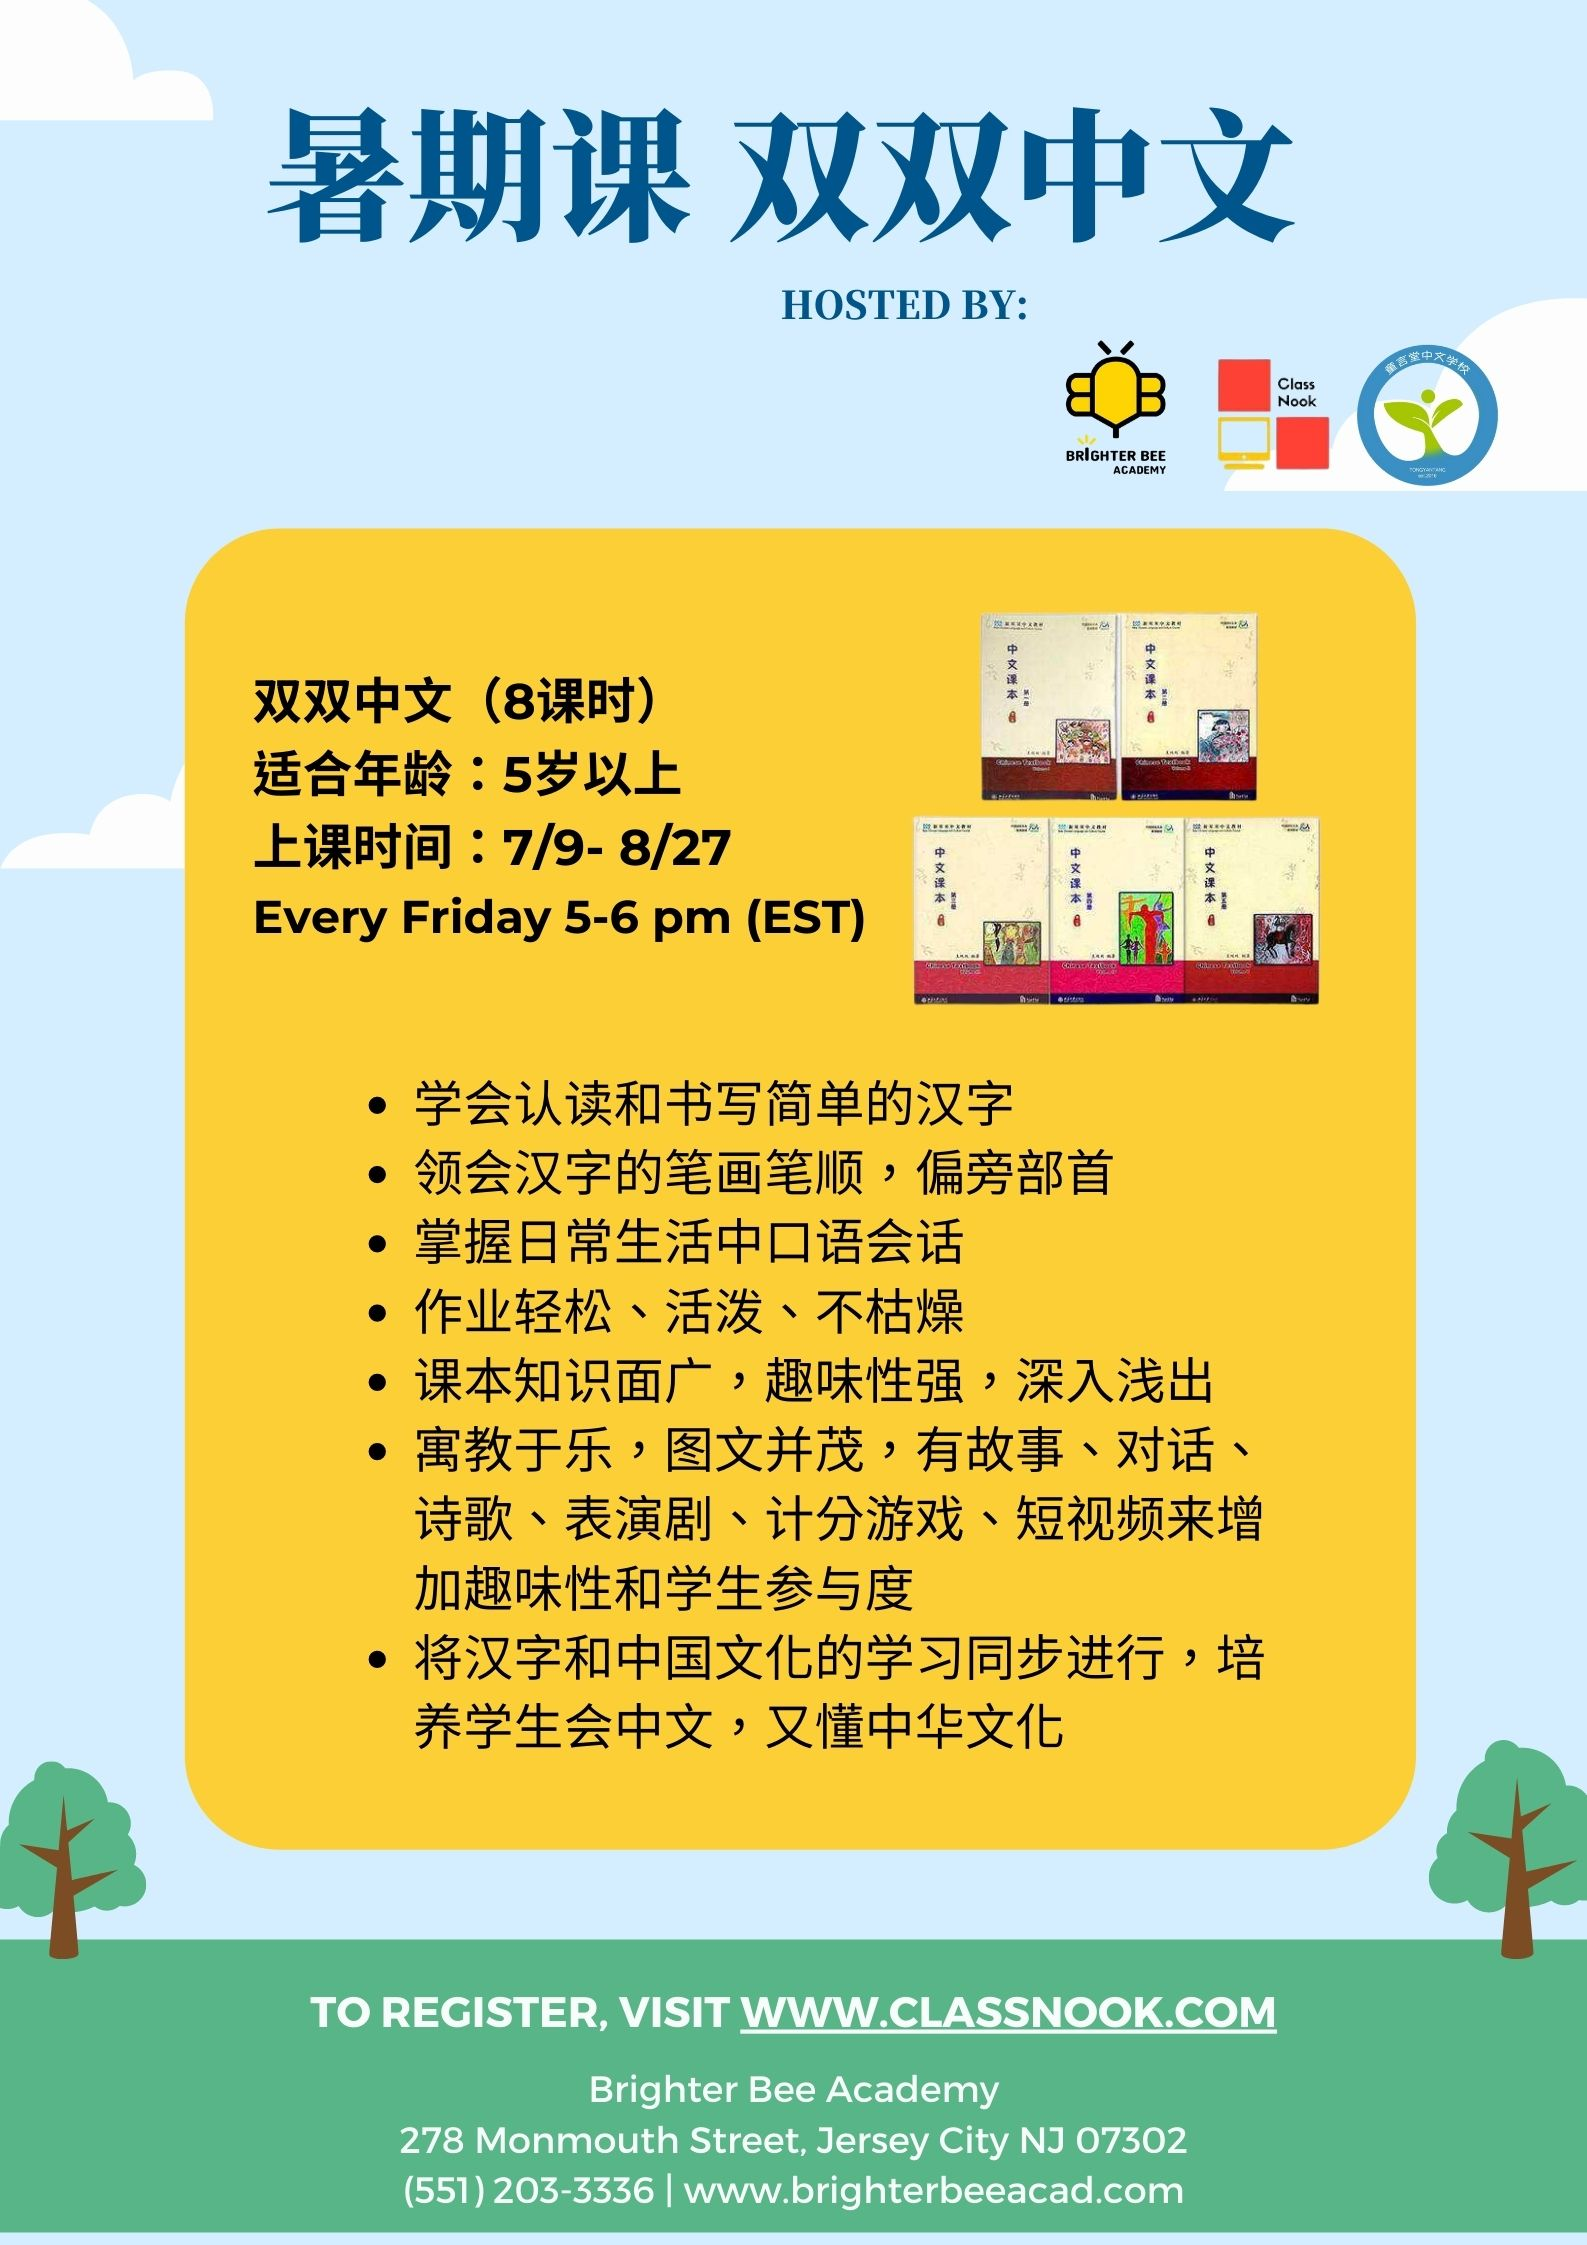 Copy of BB Course Posters 的複本 (3)